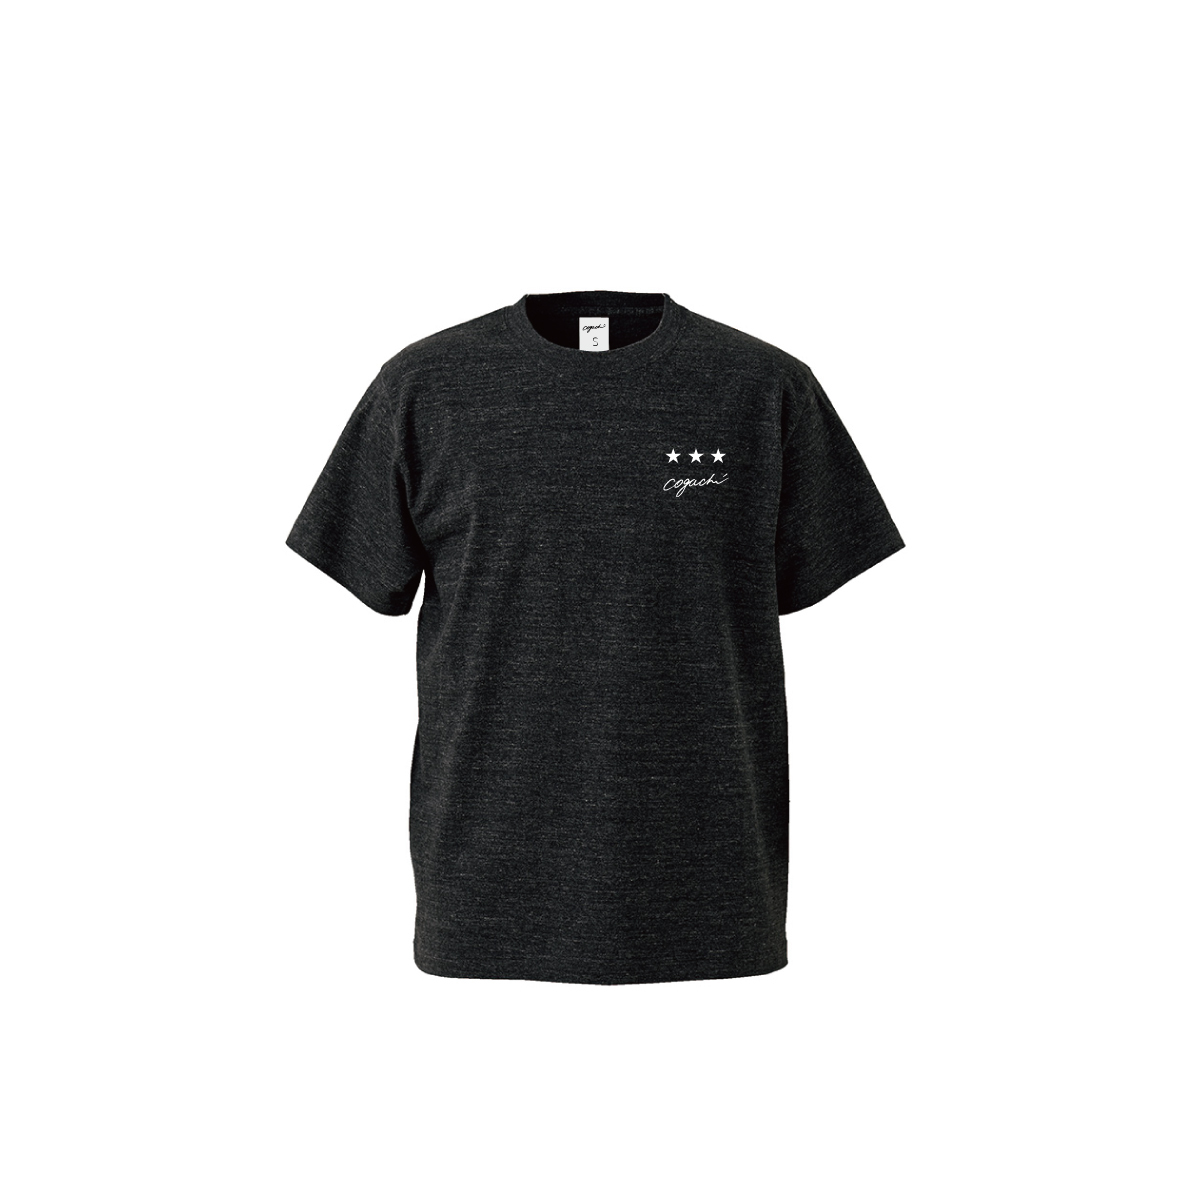 ST T-shirt(HEATHER BLACK)